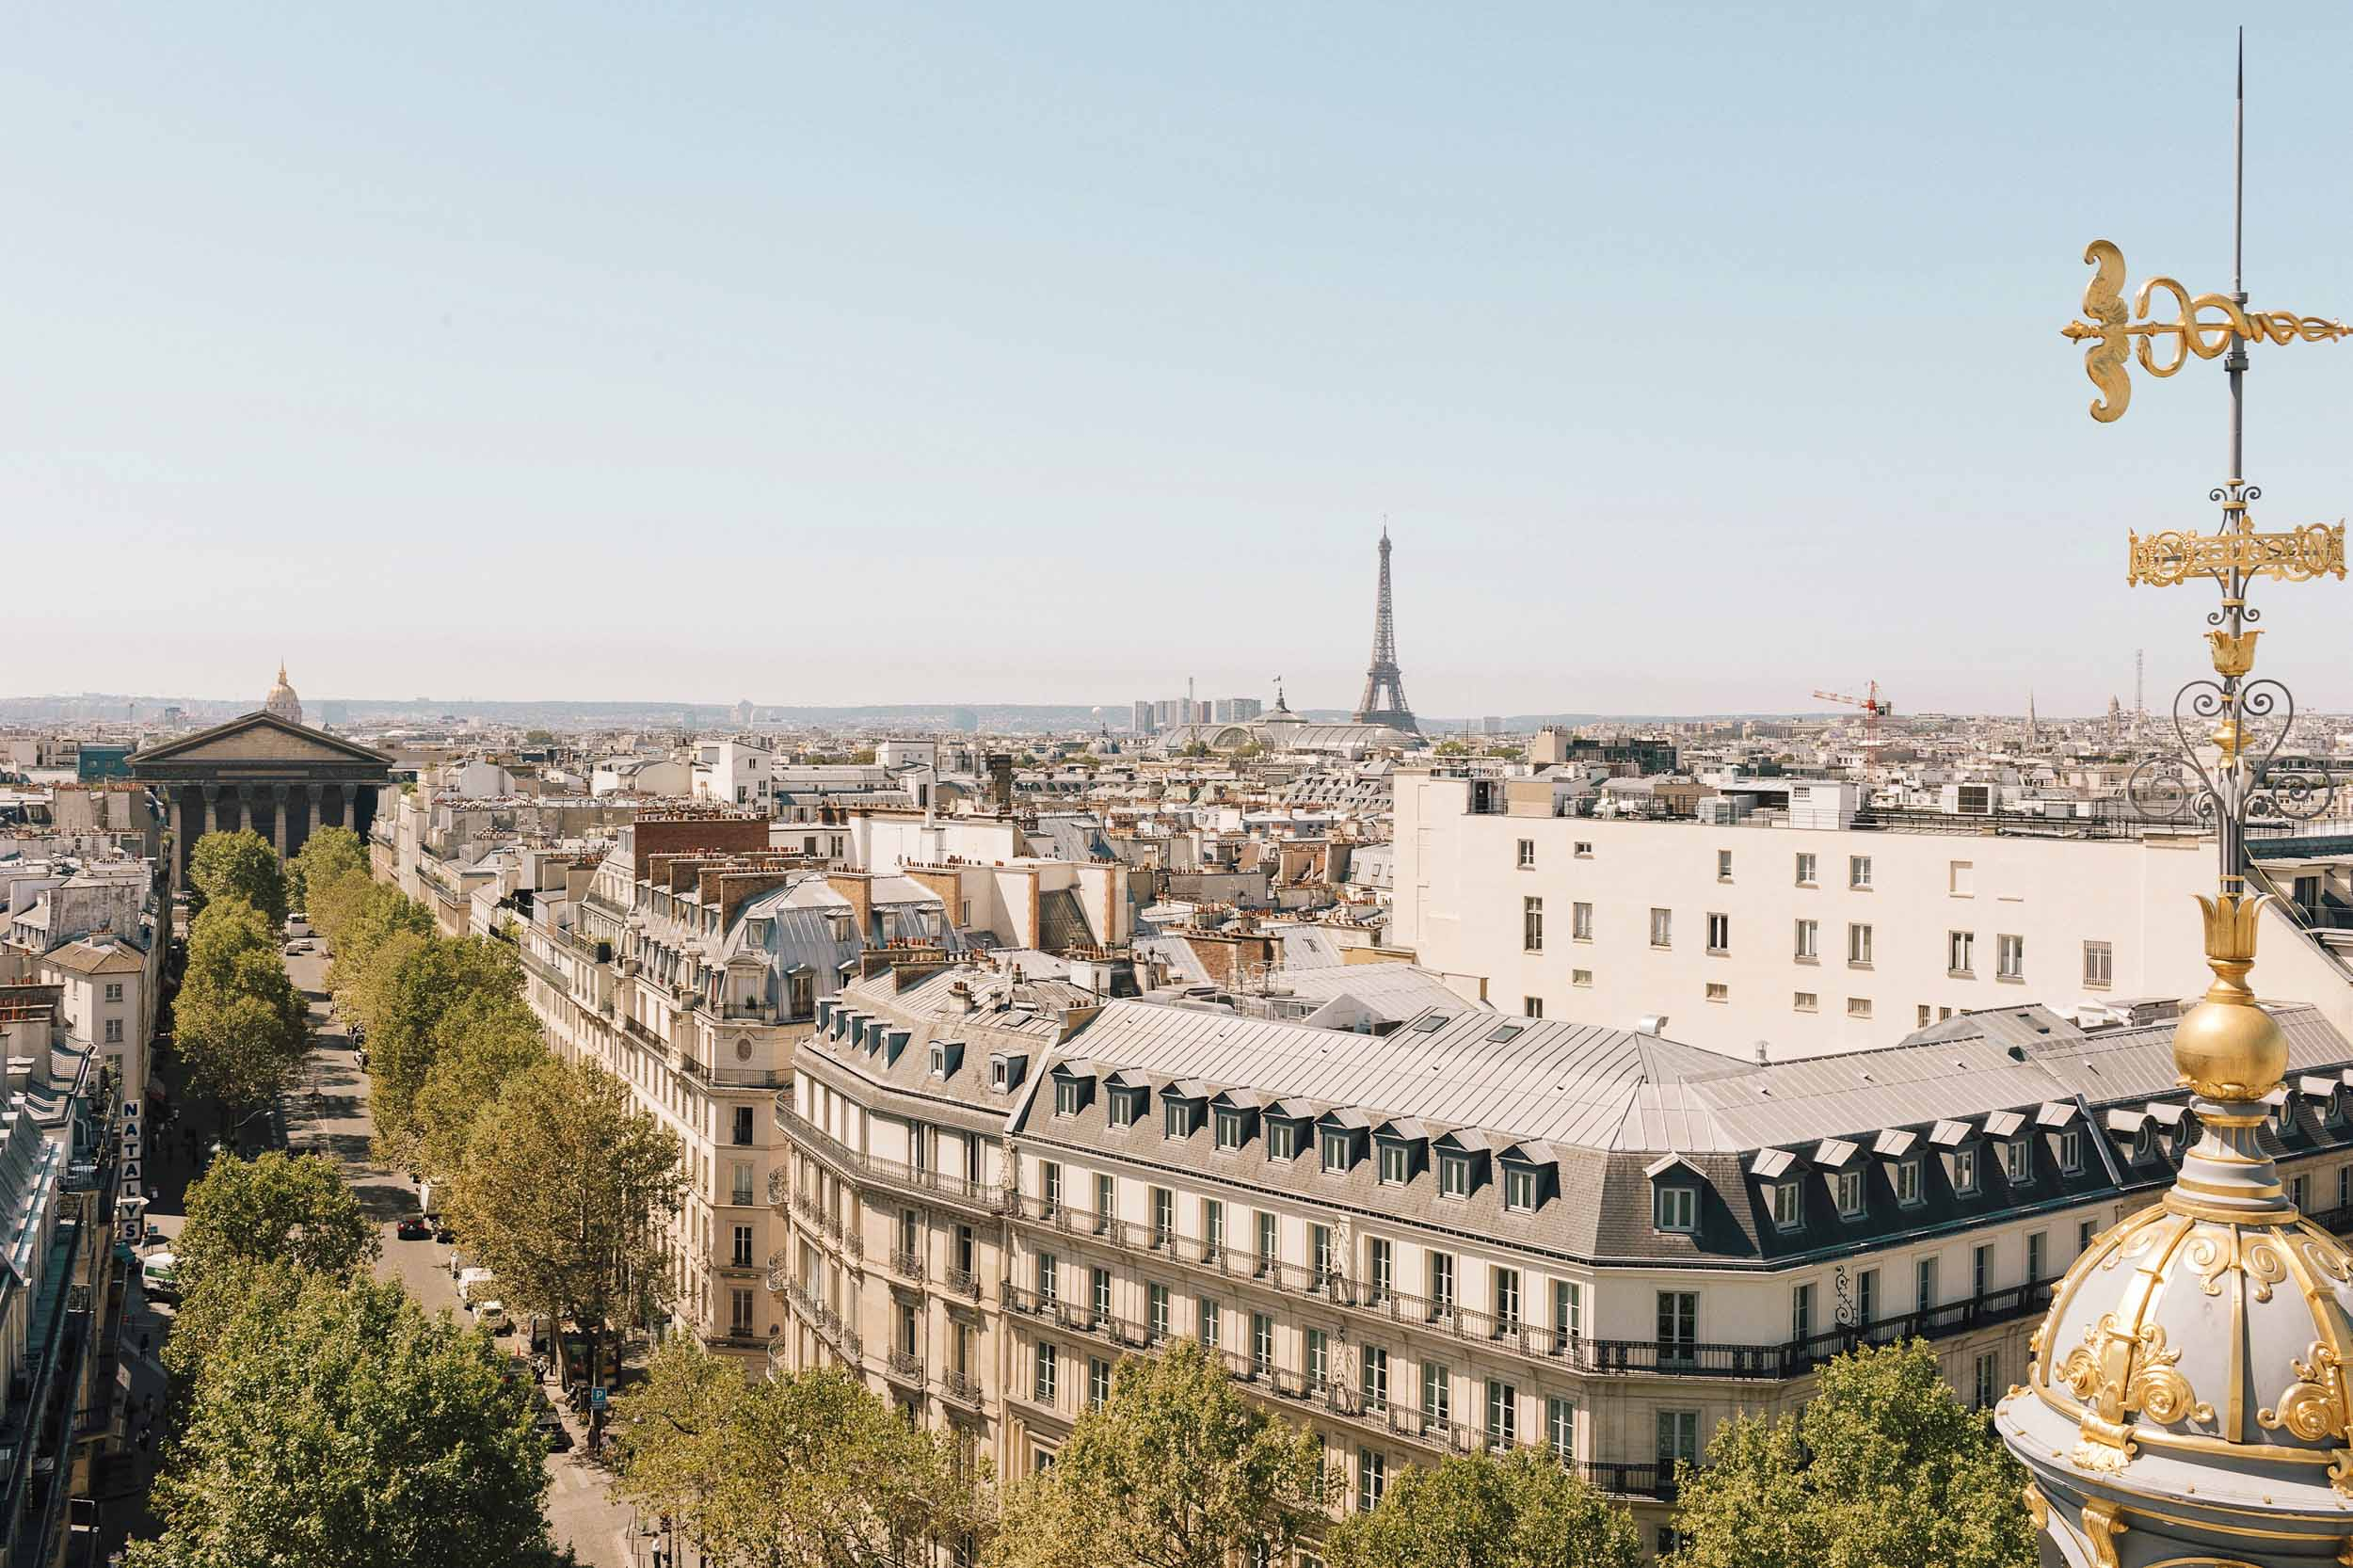 How expensive is Paris? Here are the average prices for food, museum entrance, beer, and more.